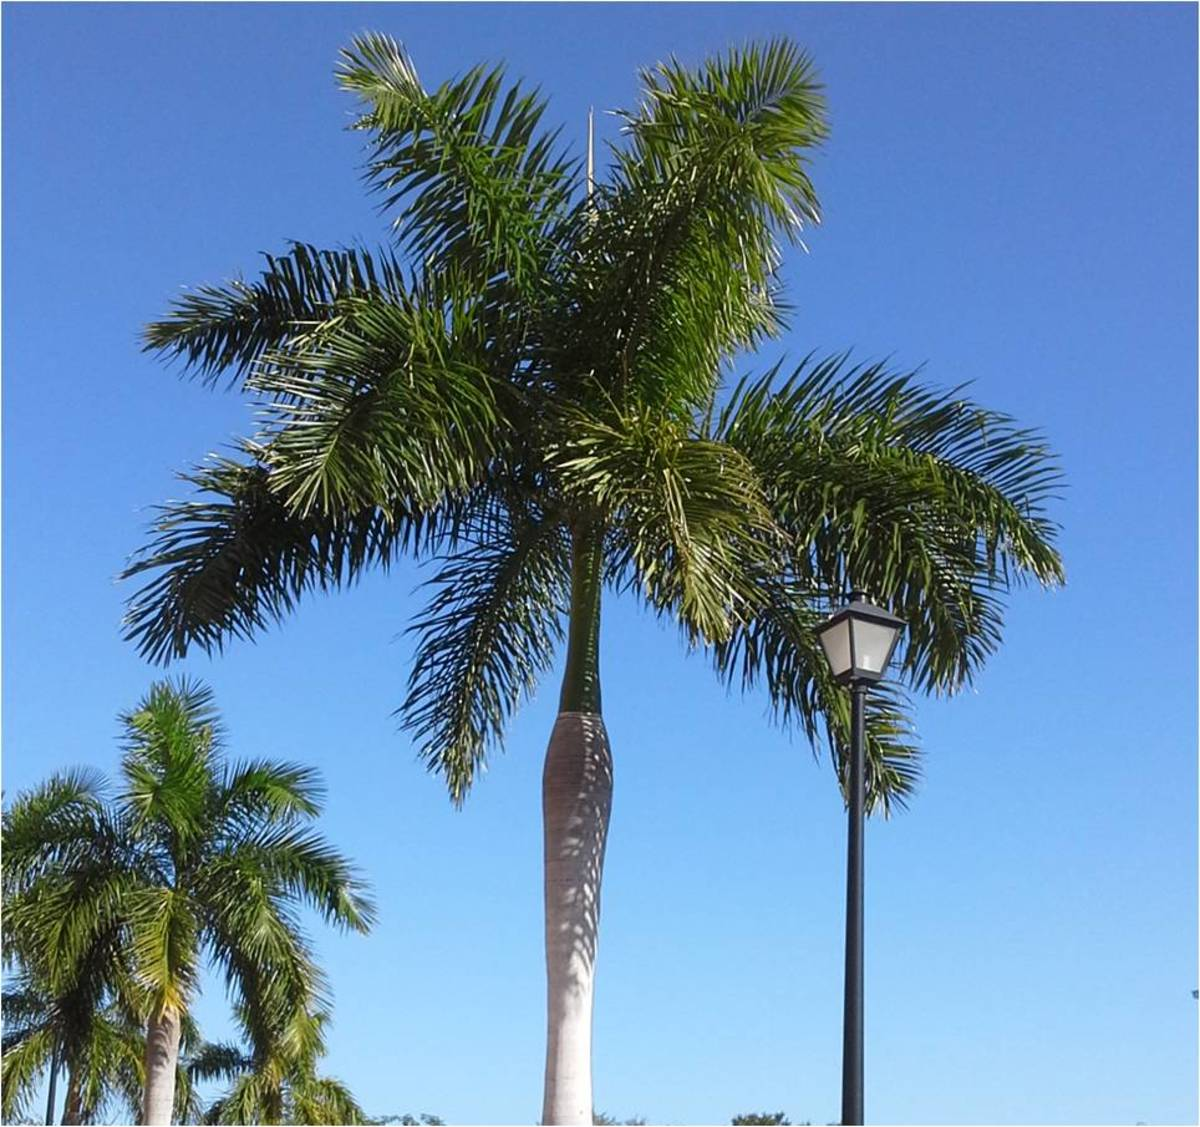 The Royal Palm is Cuba's National tree.